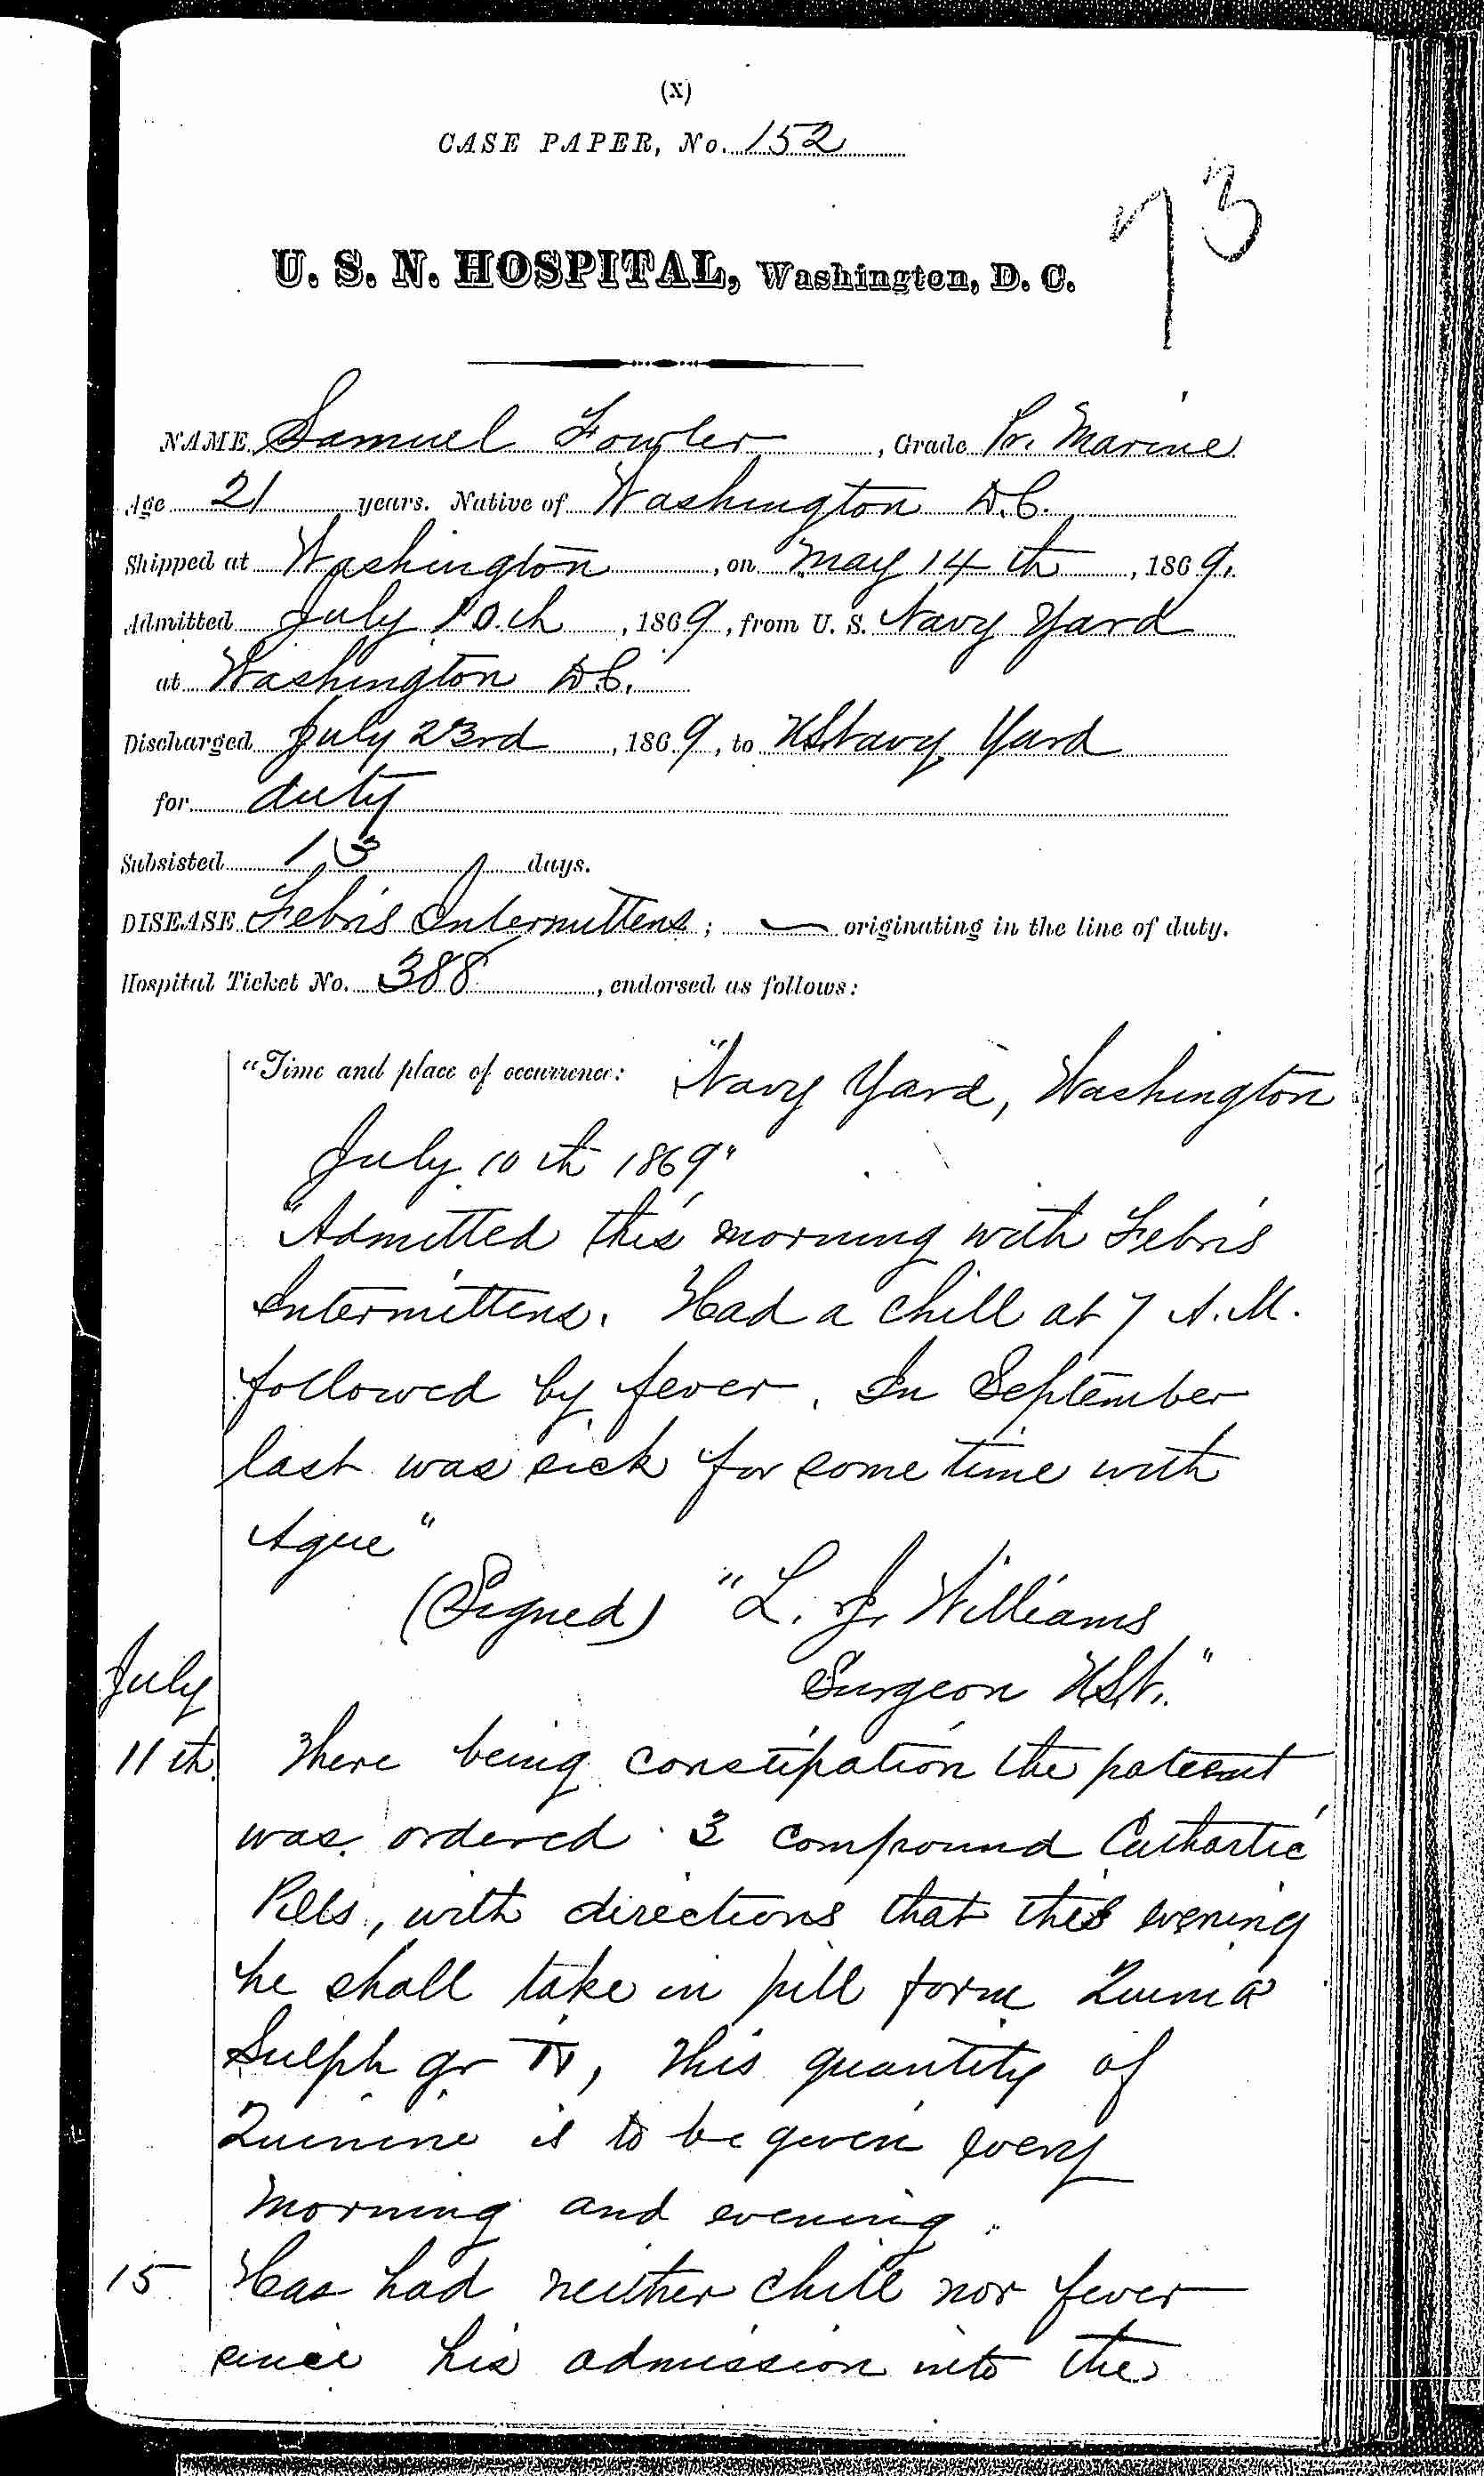 Entry for Samuel Fowler (page 1 of 2) in the log Hospital Tickets and Case Papers - Naval Hospital - Washington, D.C. - 1868-69